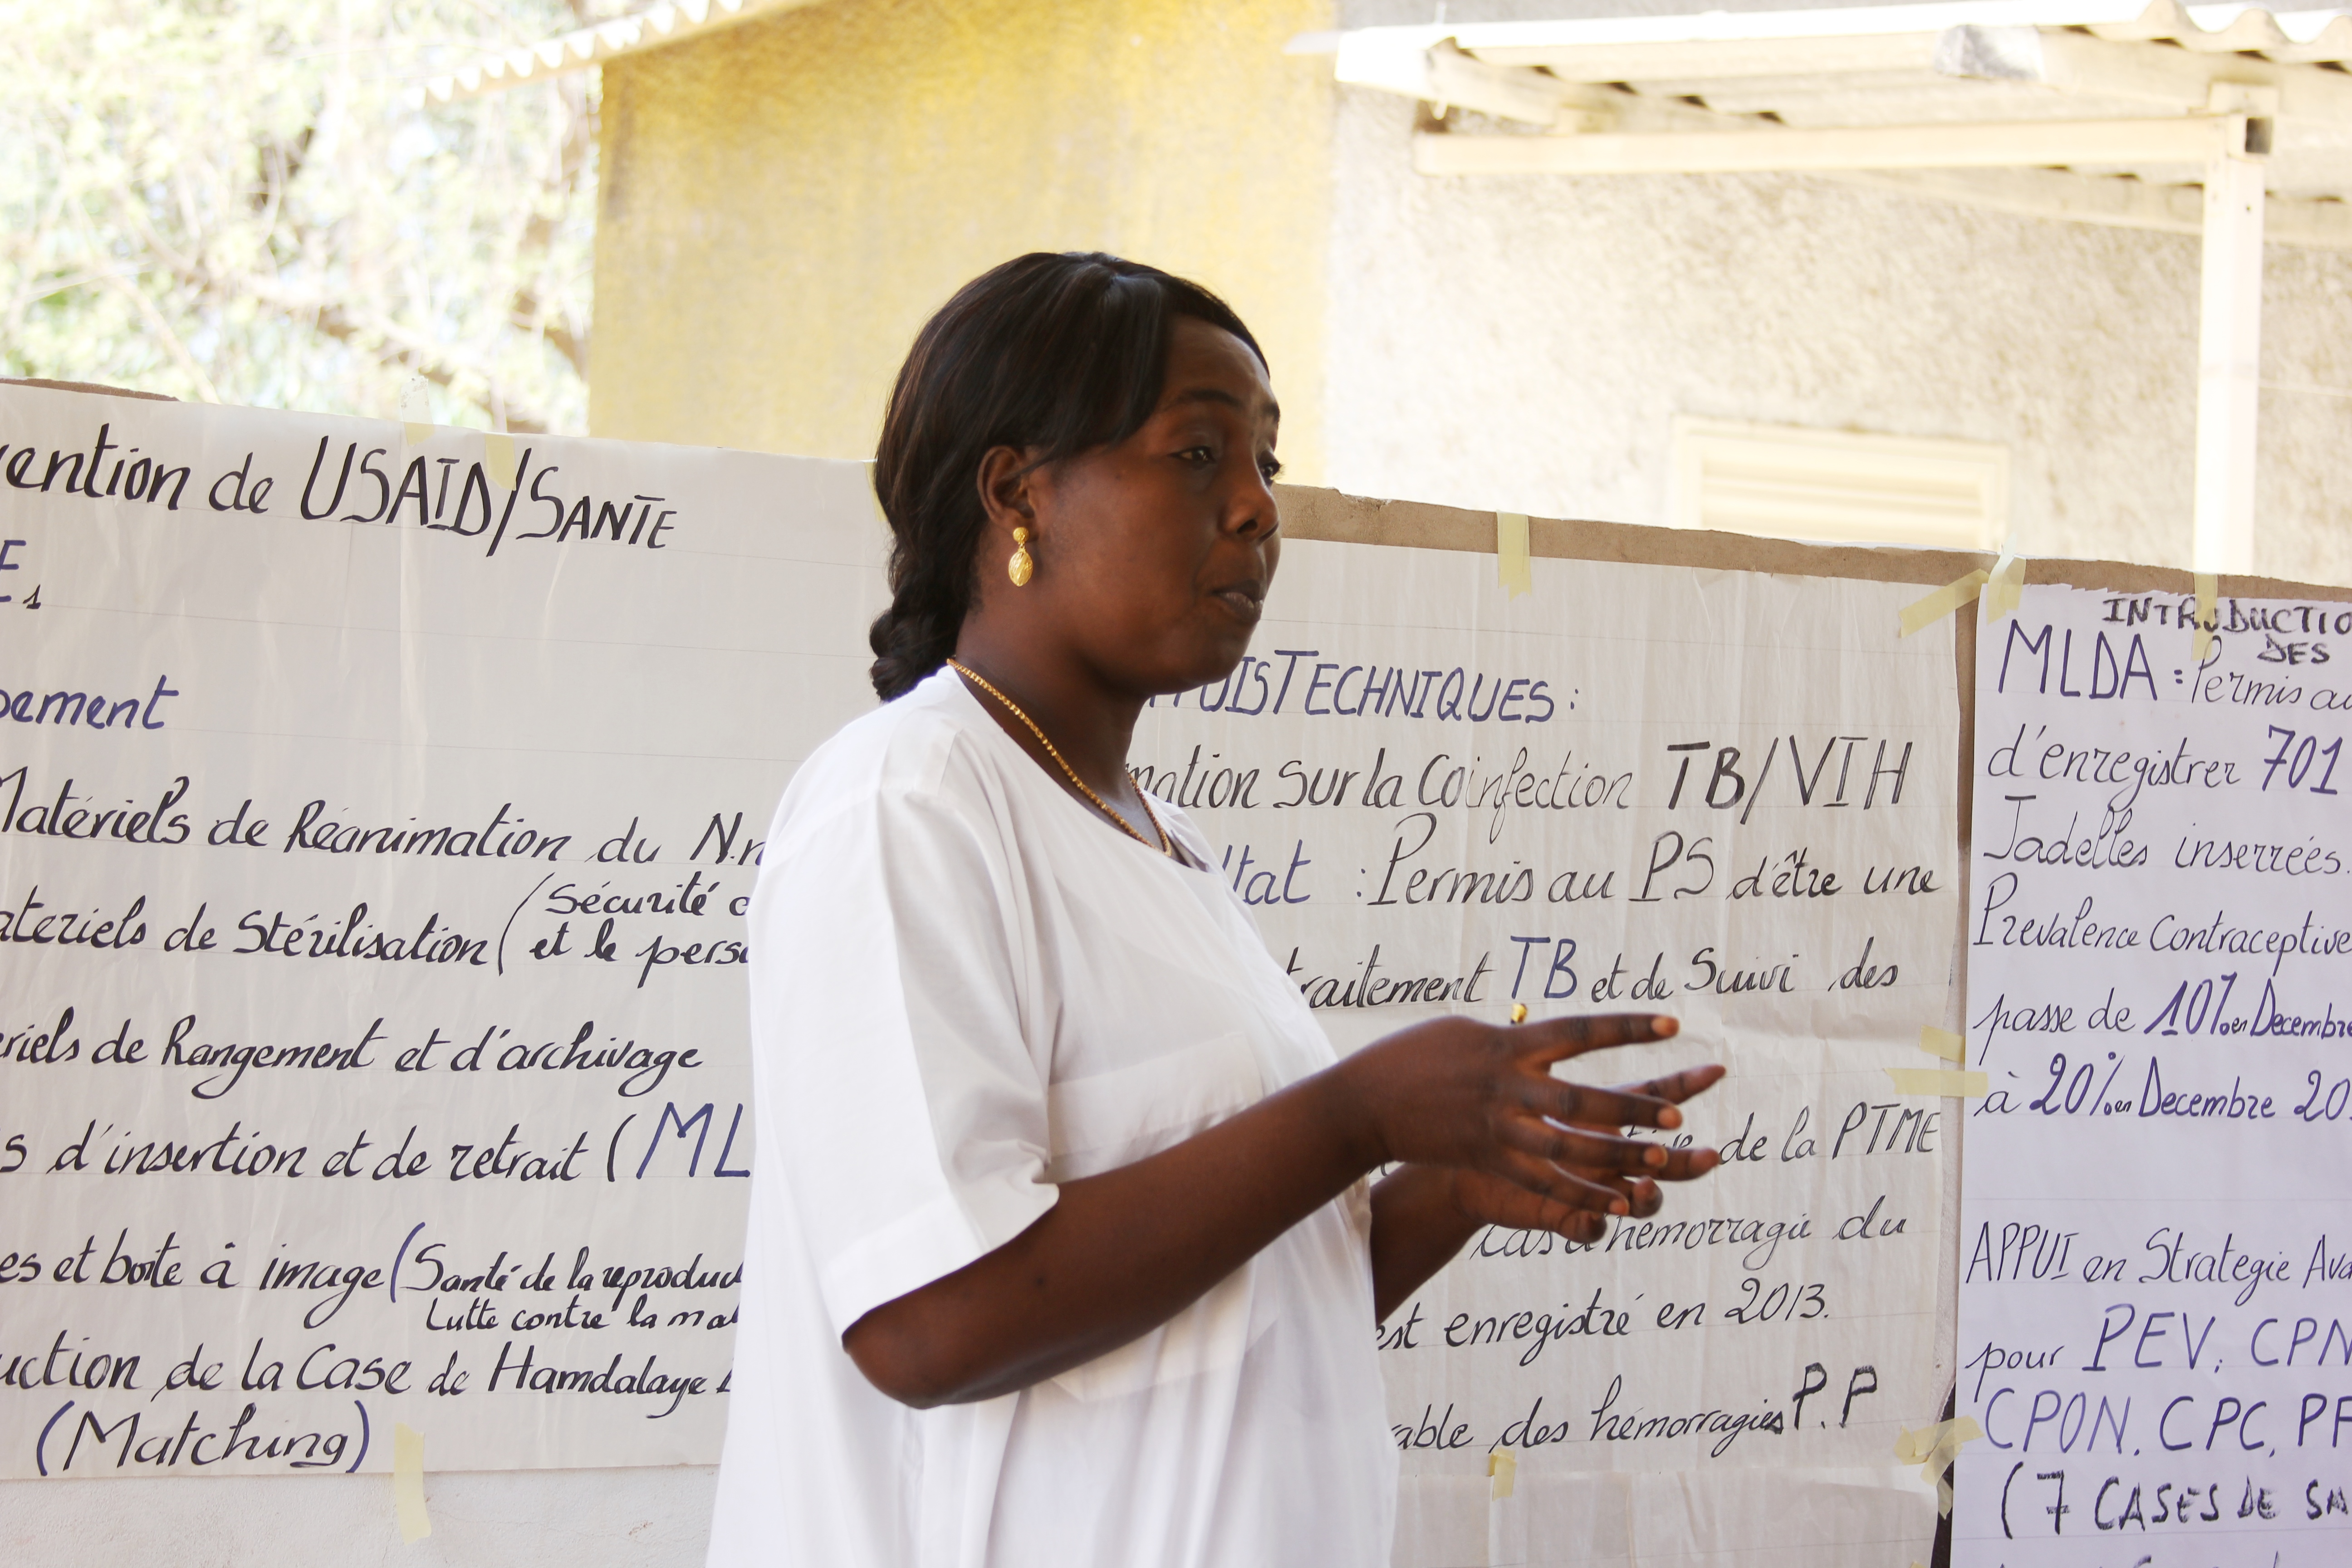 Chief nurse, Madame Dieng, explains some of the major health challenges in the area.